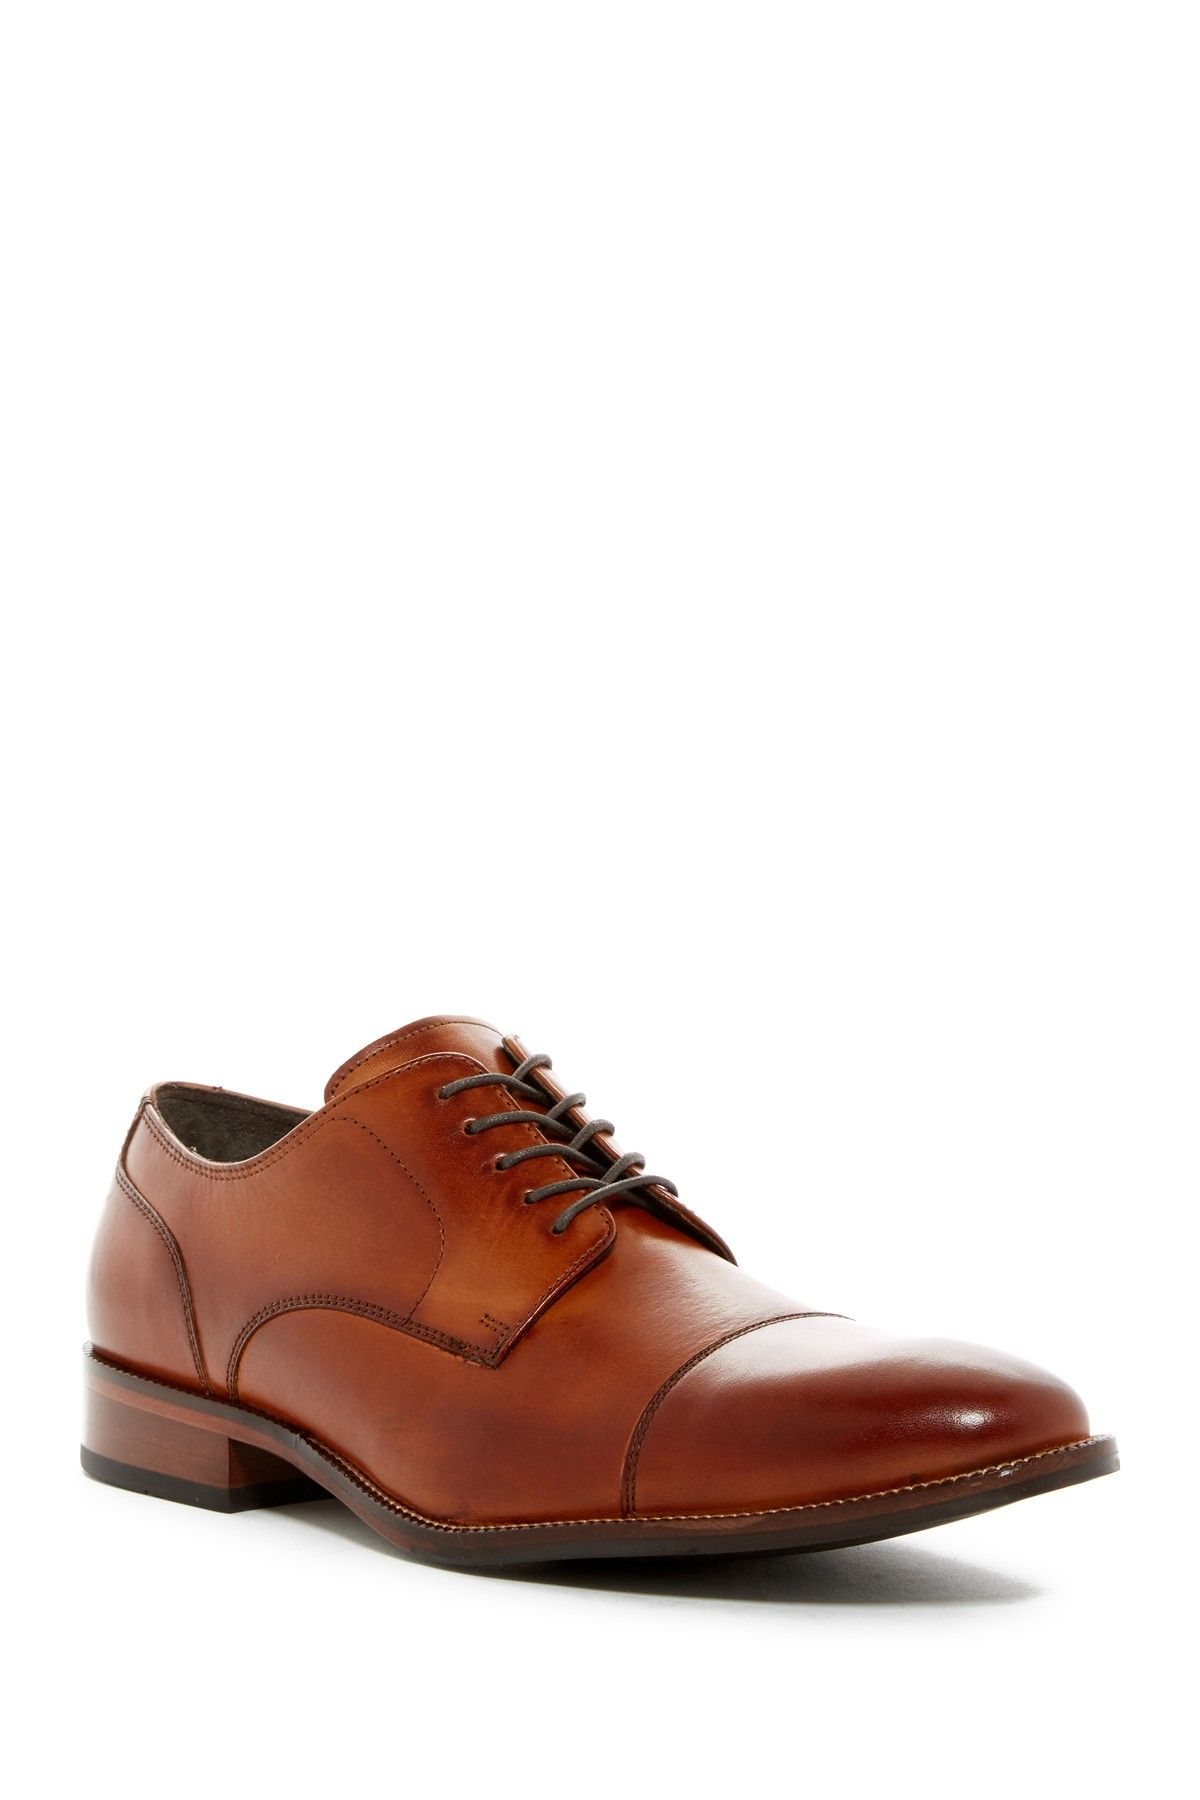 0f851f1770d54 Benton Cap Toe Oxford II - Wide Width Available by Cole Haan on   nordstrom rack